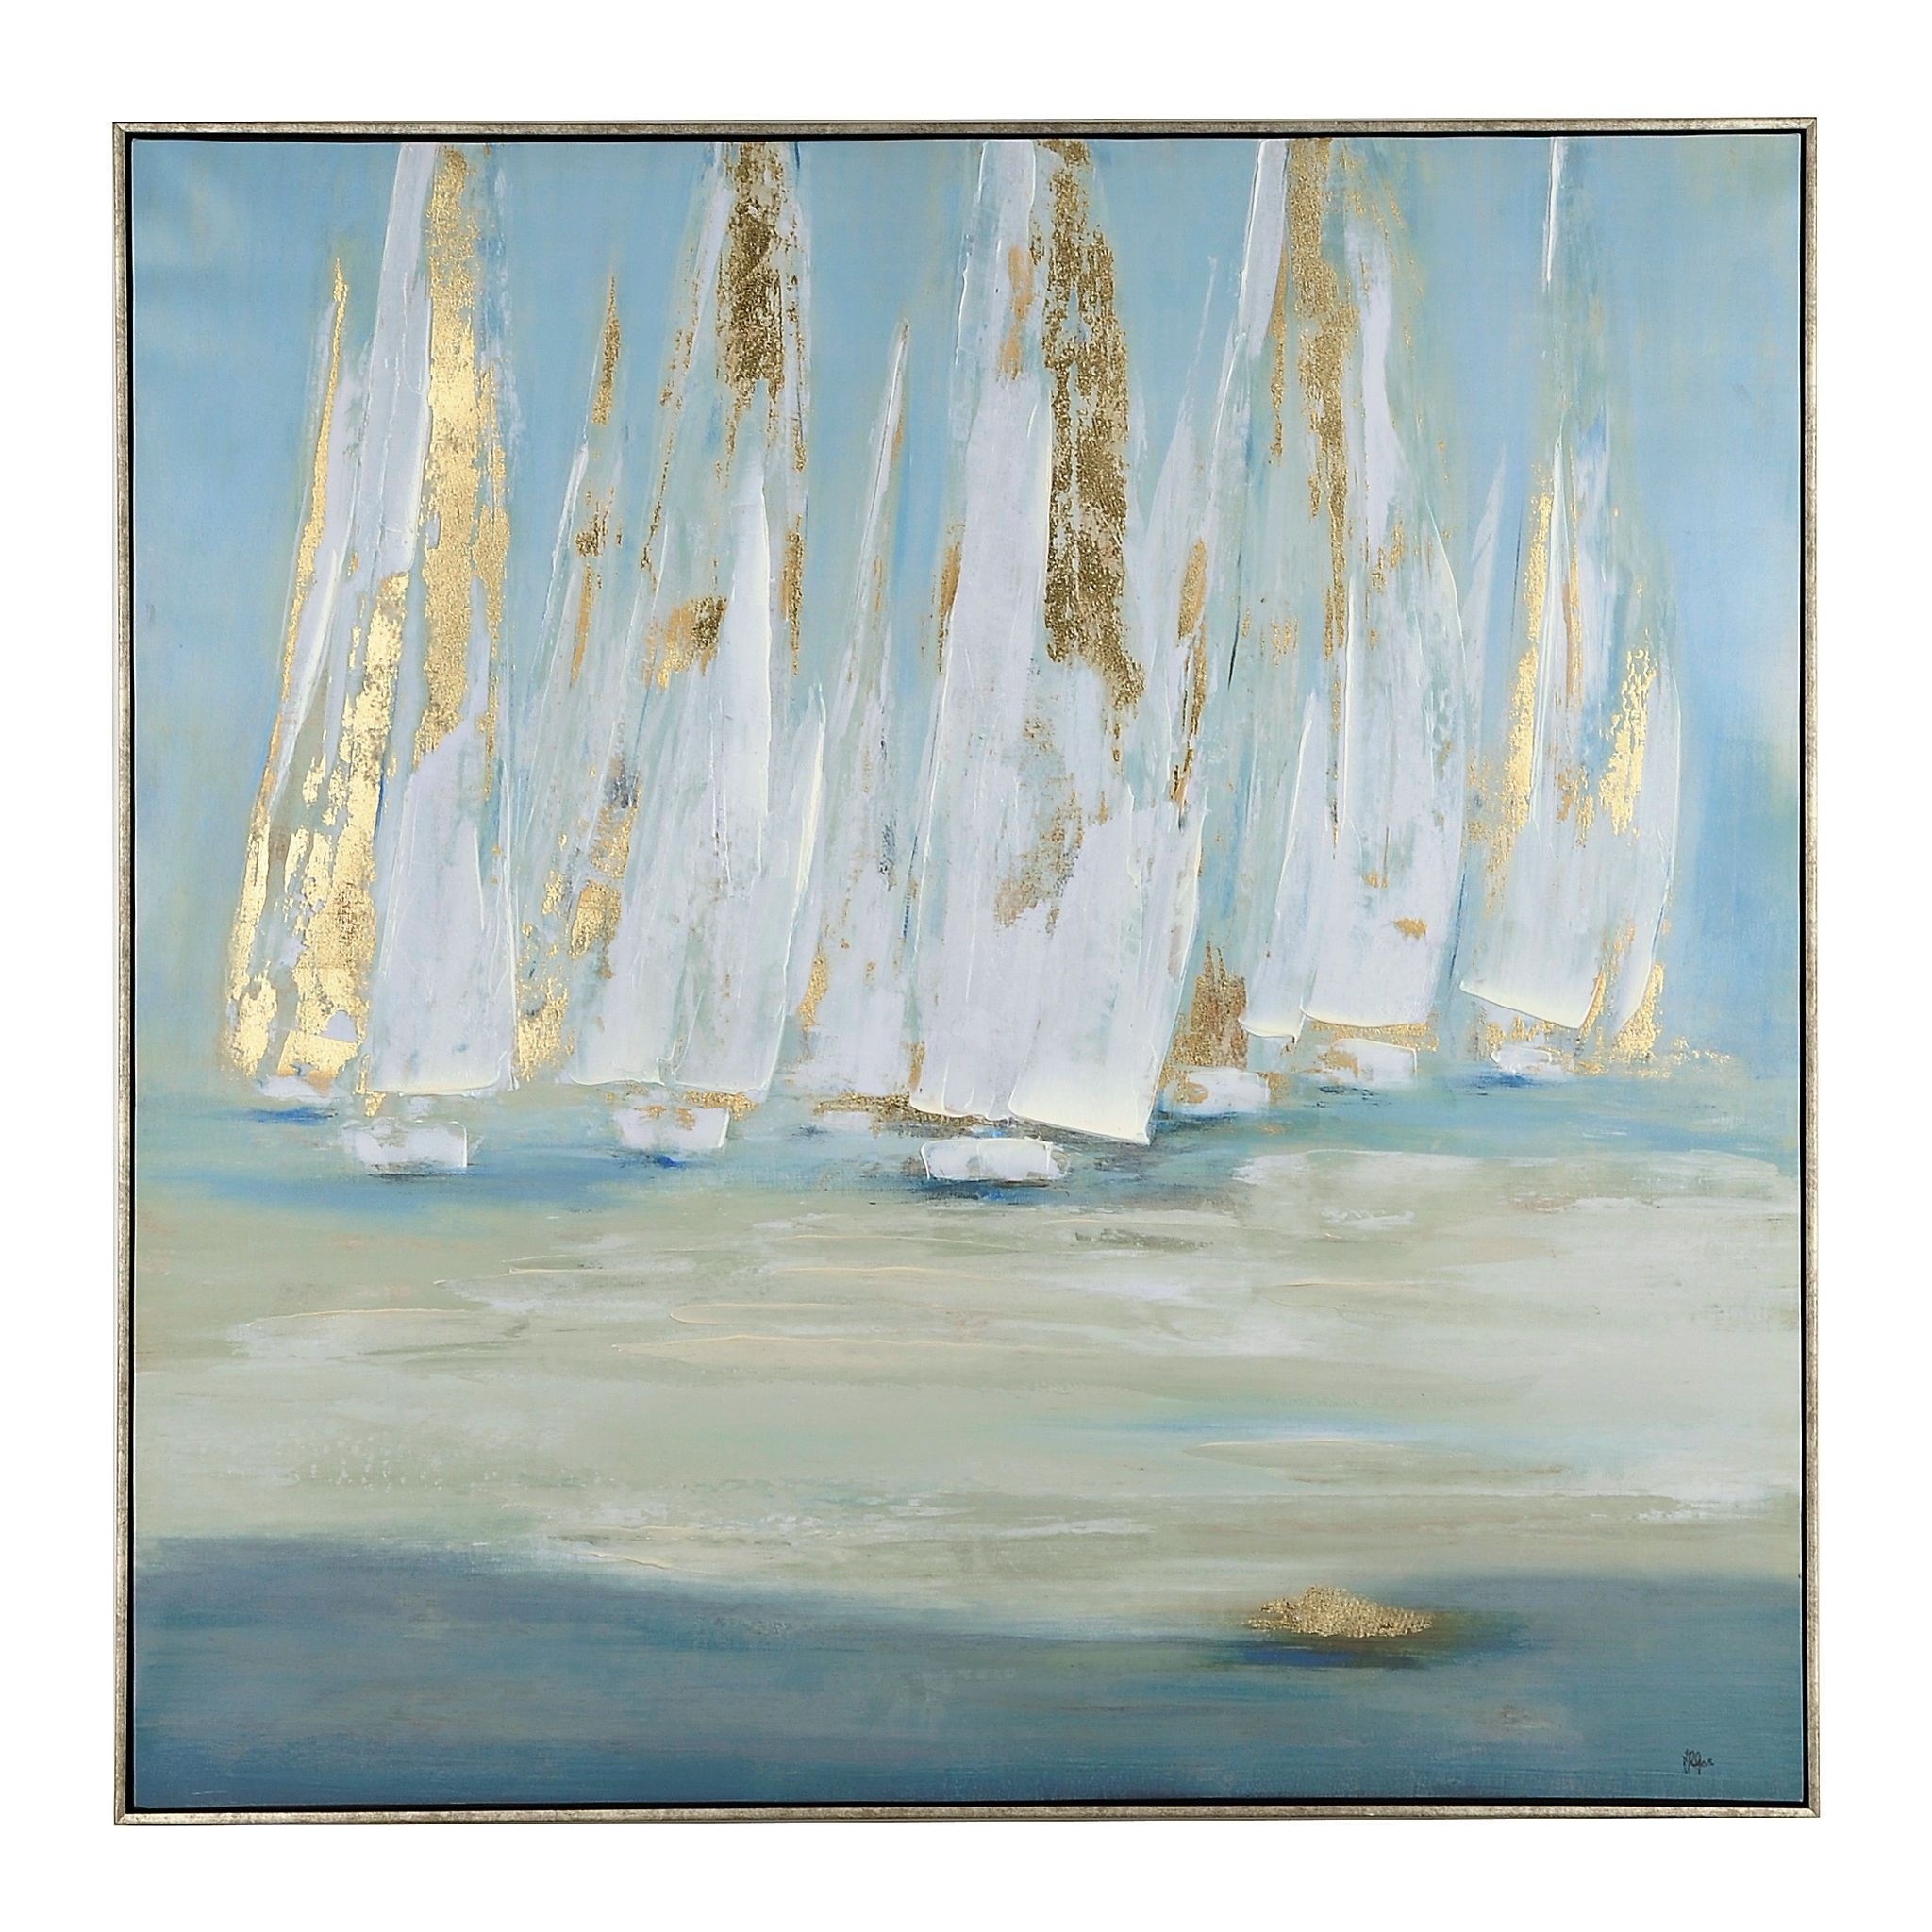 Glimmering Sails Framed Canvas Art Print | Framed Canvas, Canvases With Regard To Best And Newest Gold Coast Framed Art Prints (View 7 of 15)